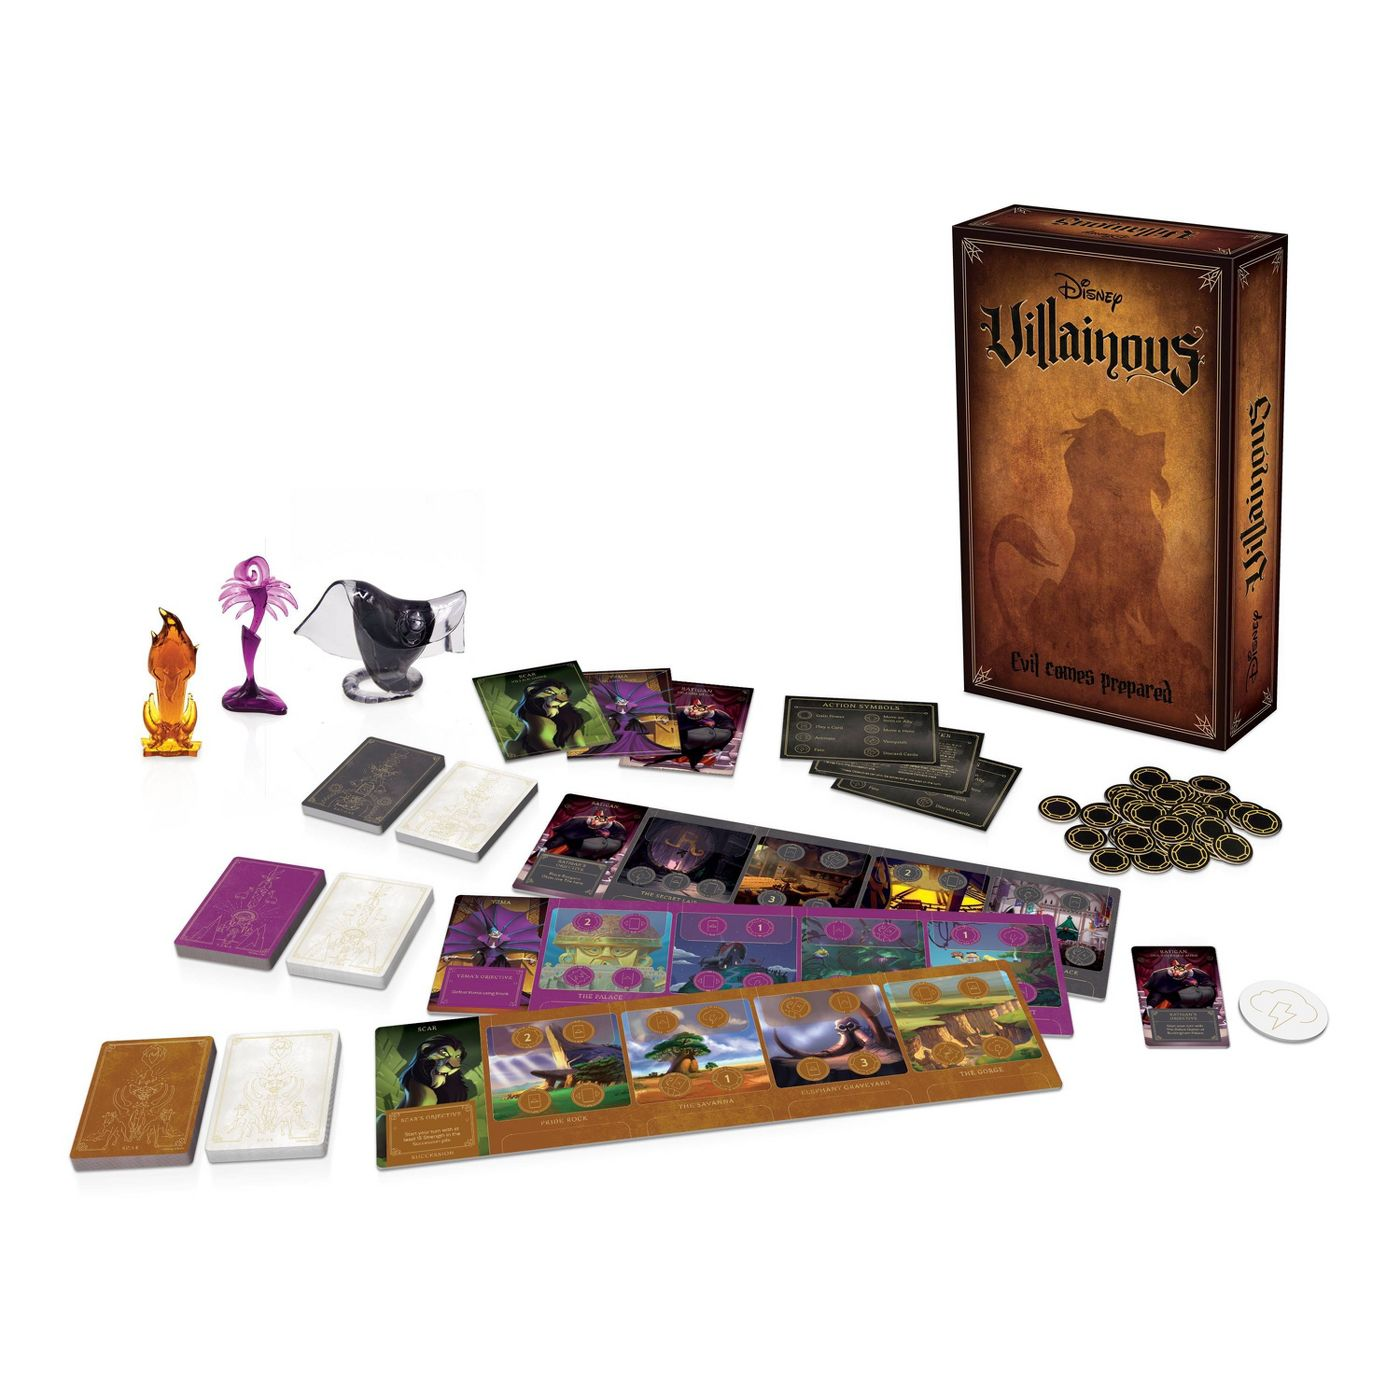 Disney Villainous: Evil Comes Prepared Box Contents